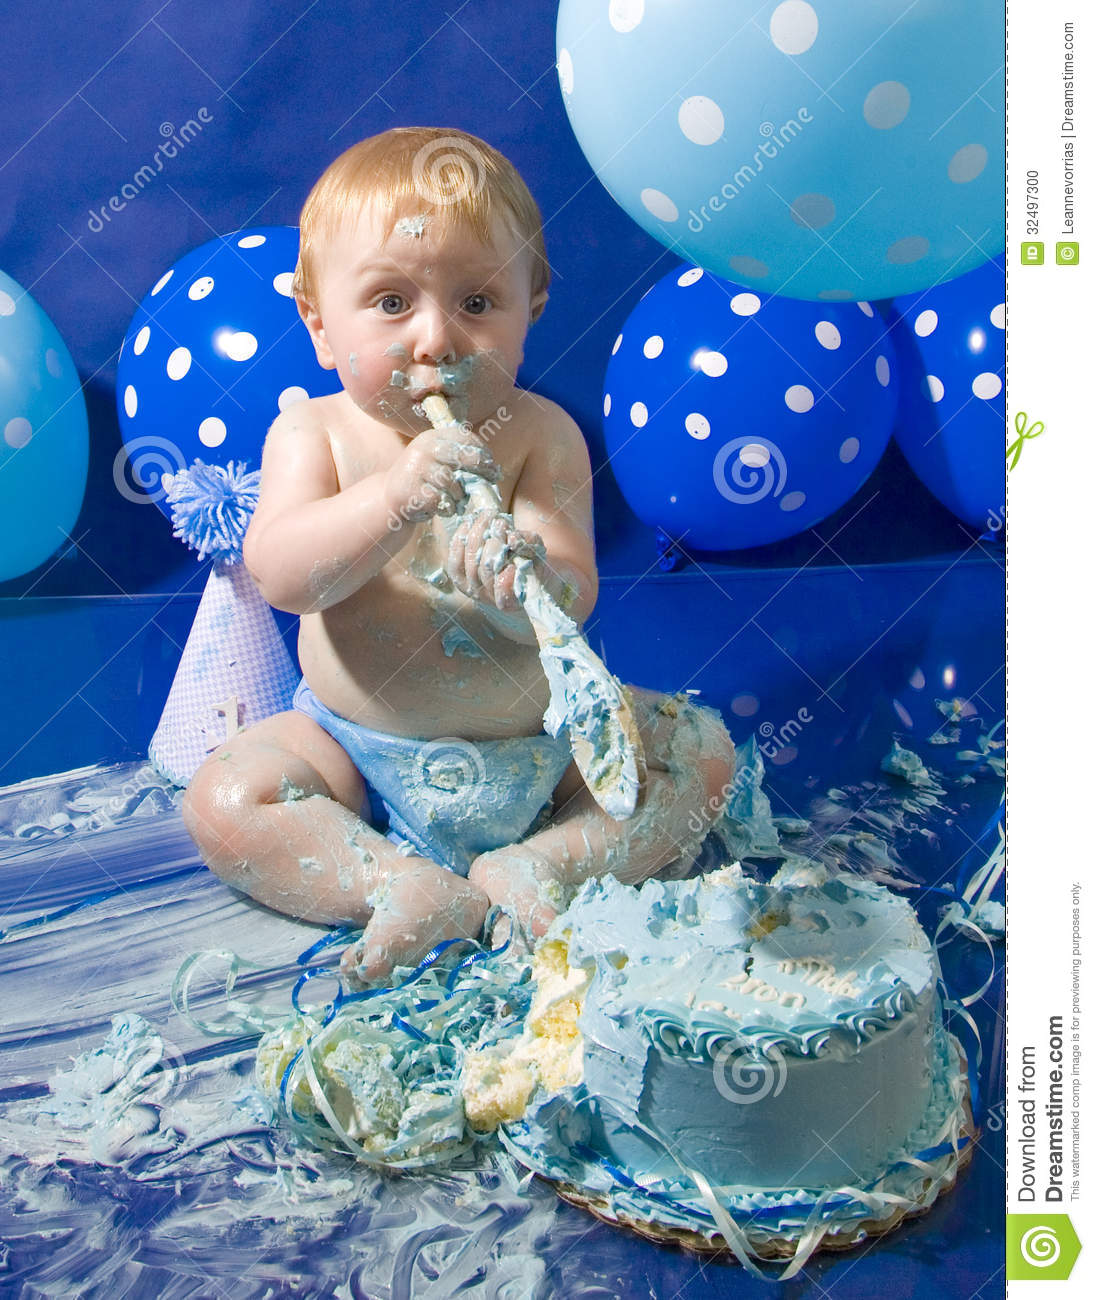 Baby's First Birthday Cake Stock Photo. Image Of Messy